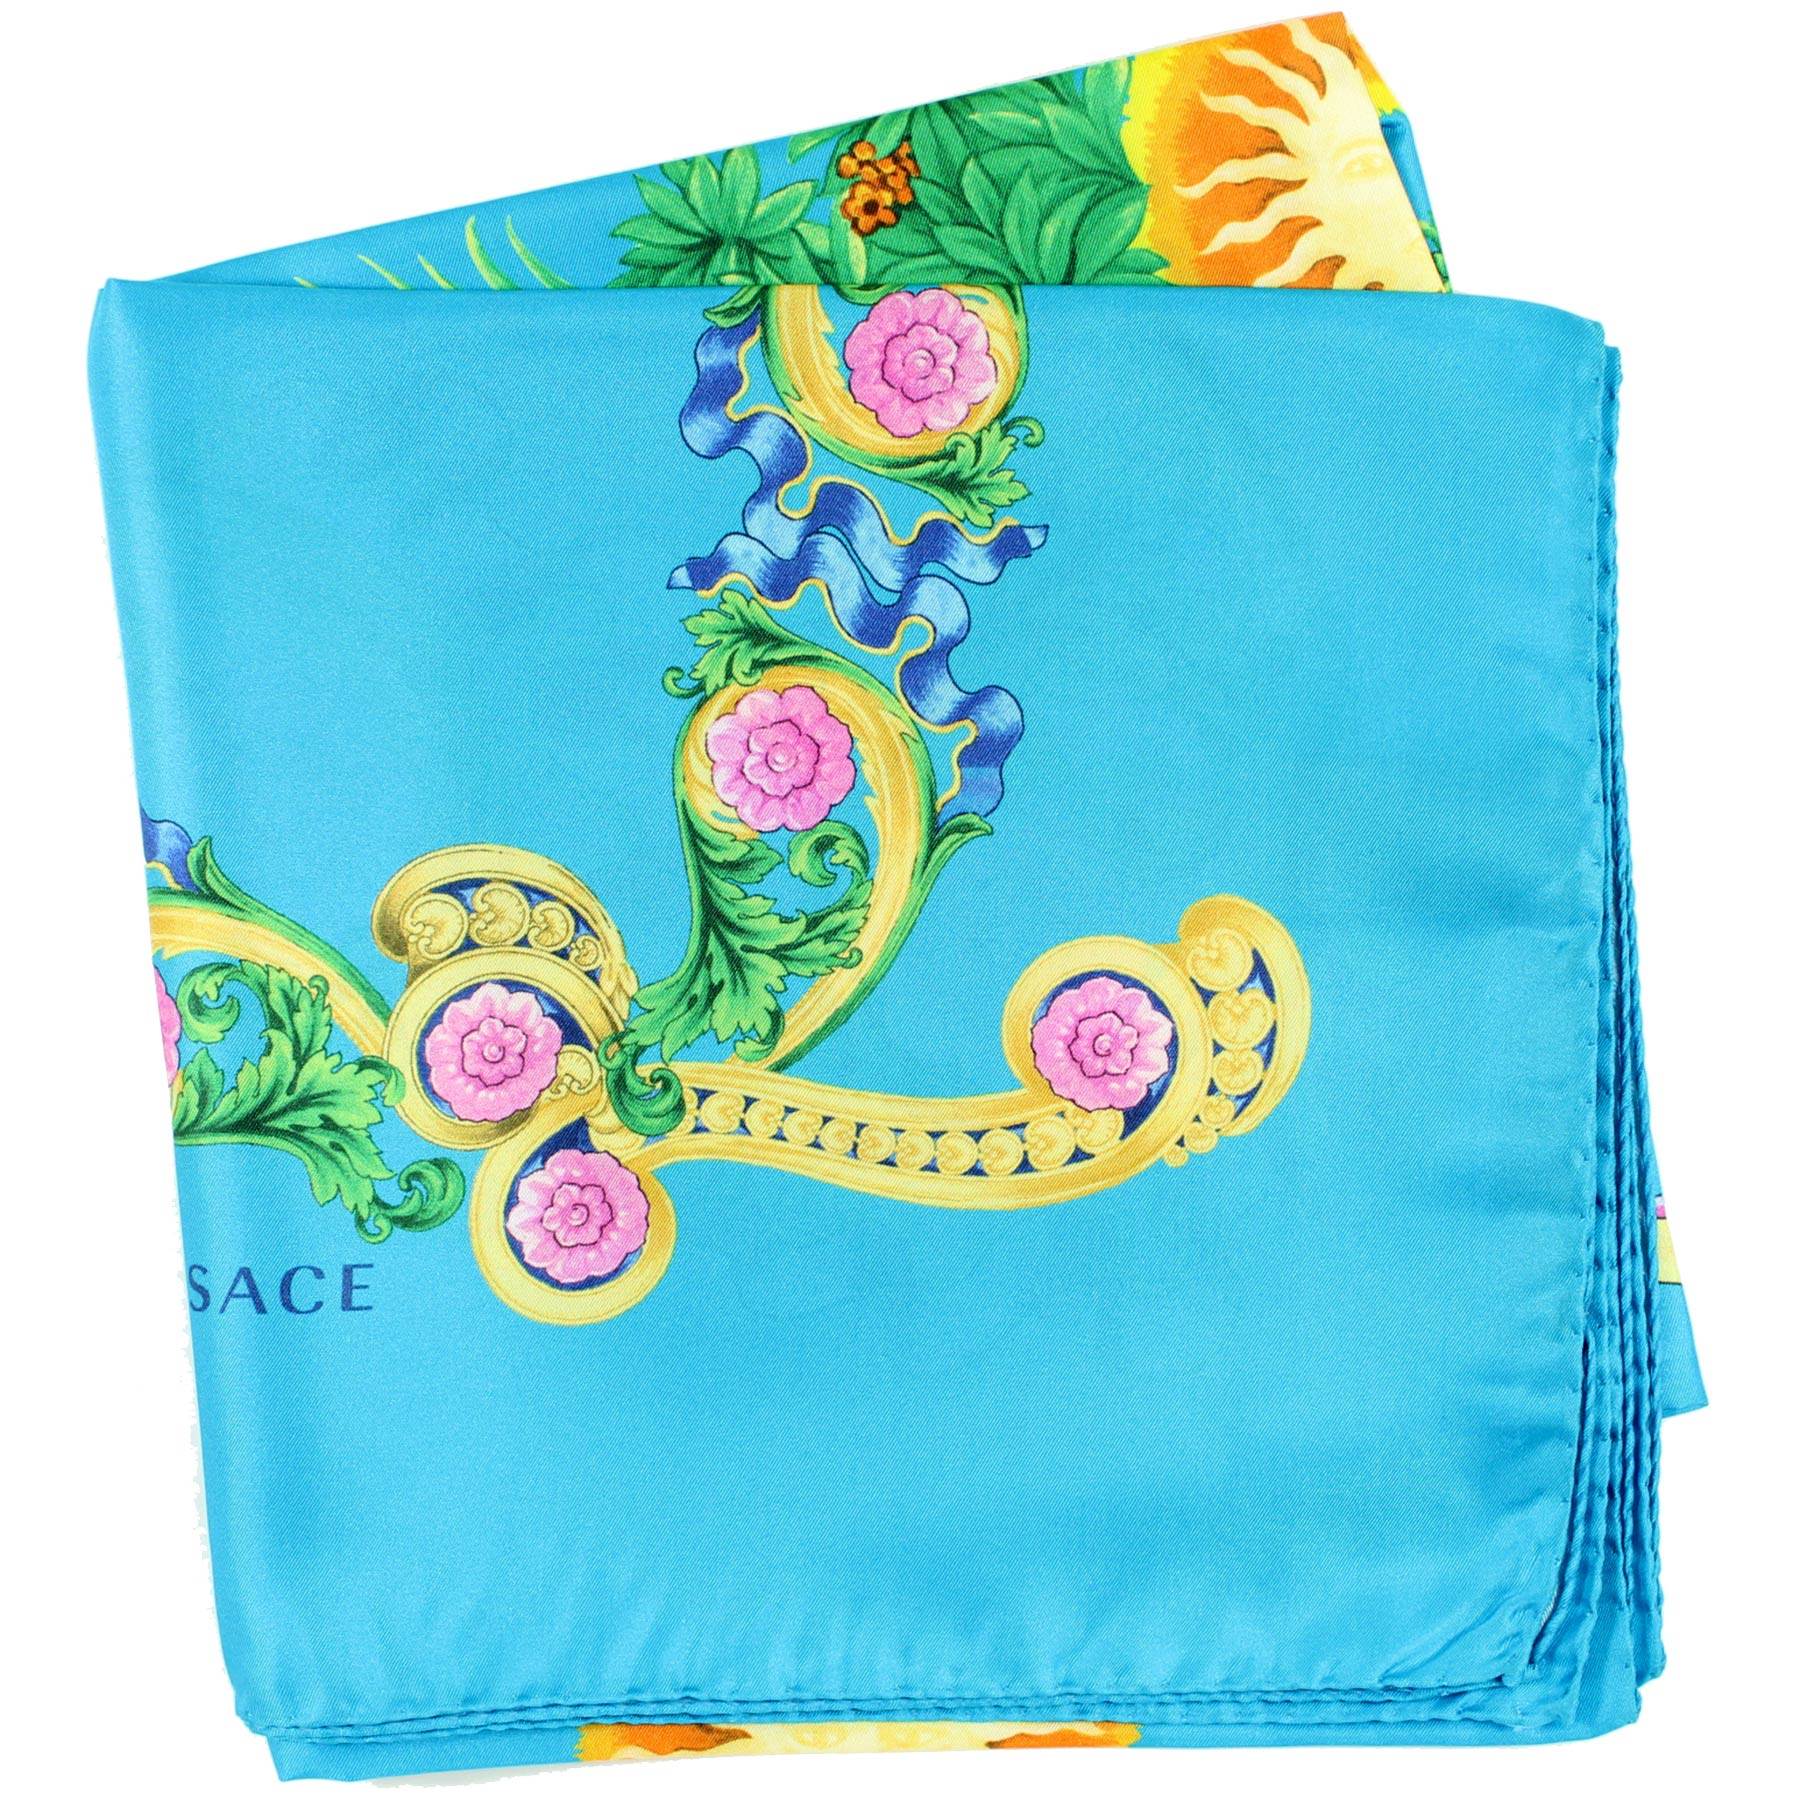 Versace Scarf Aqua Blue Miami Florida USA Design - Twill Silk Square Scarf